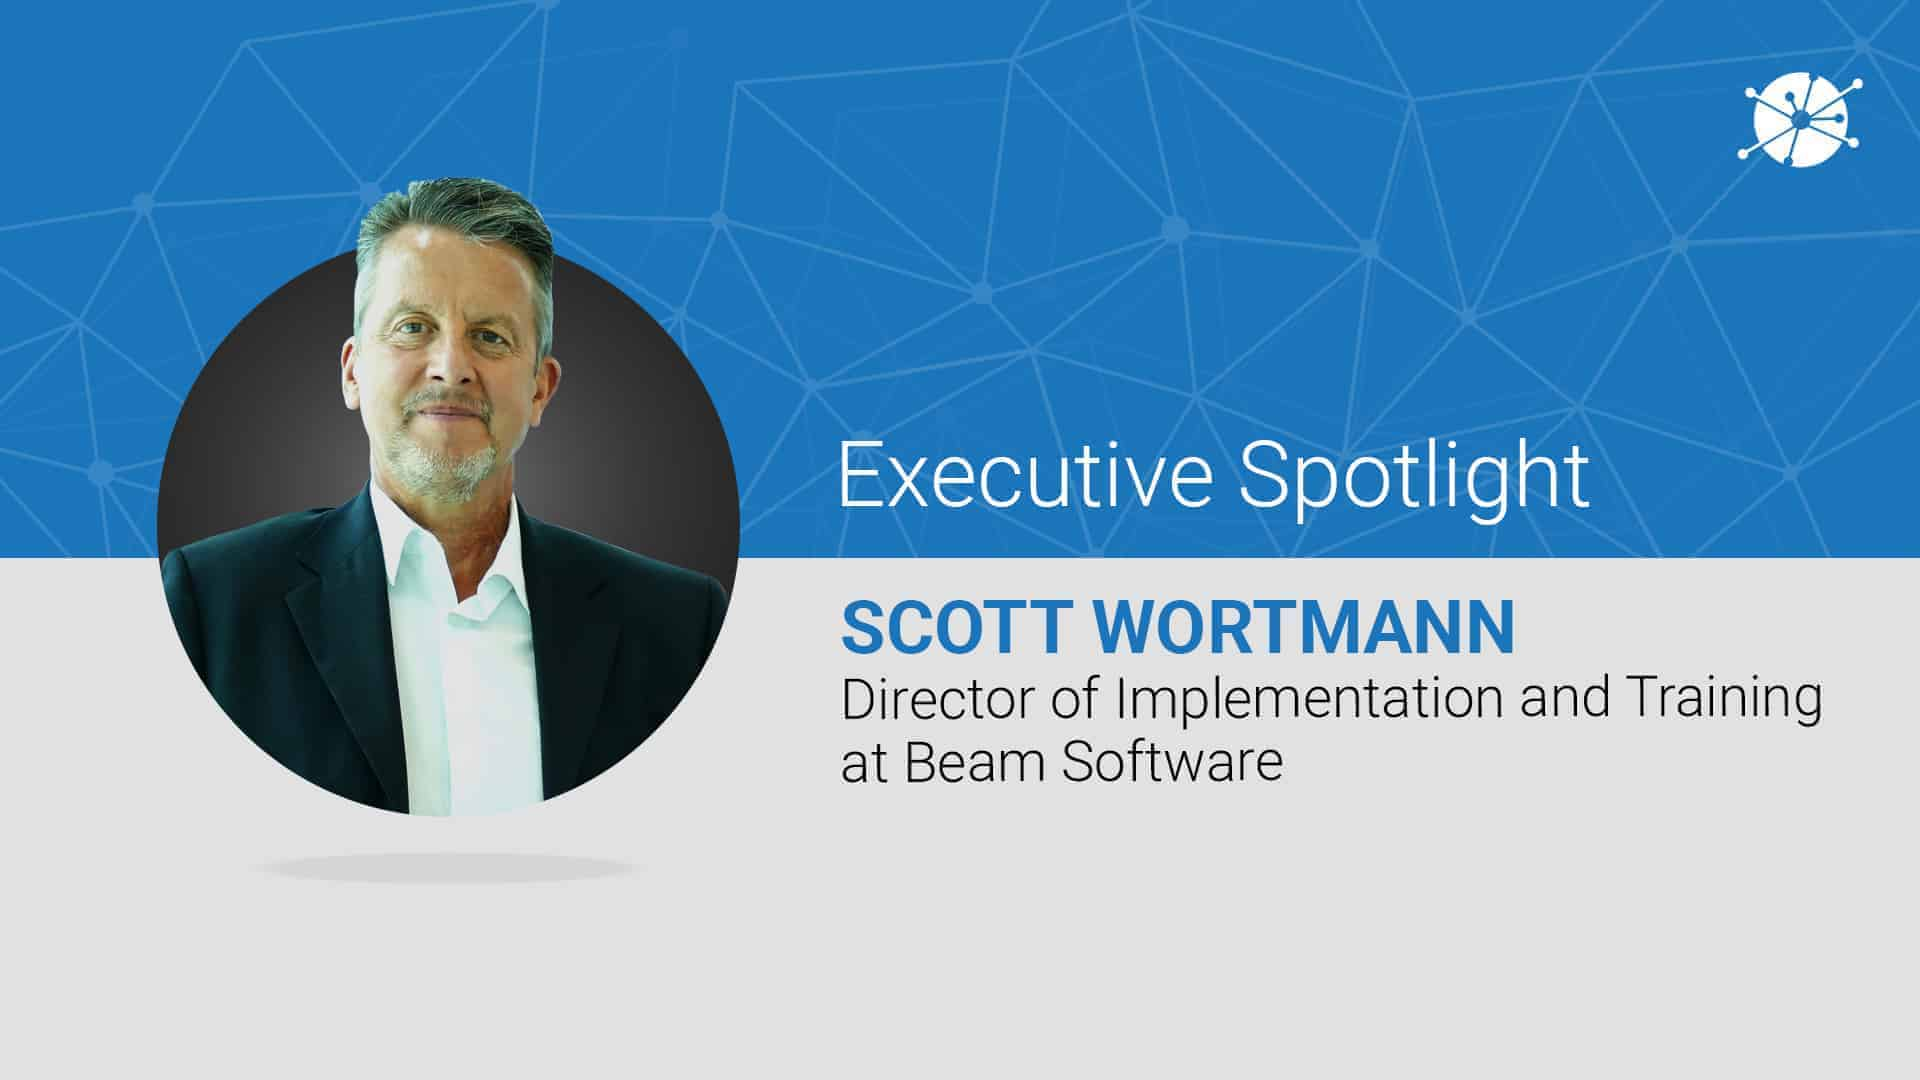 Executive spotlight profile of scott wortmann